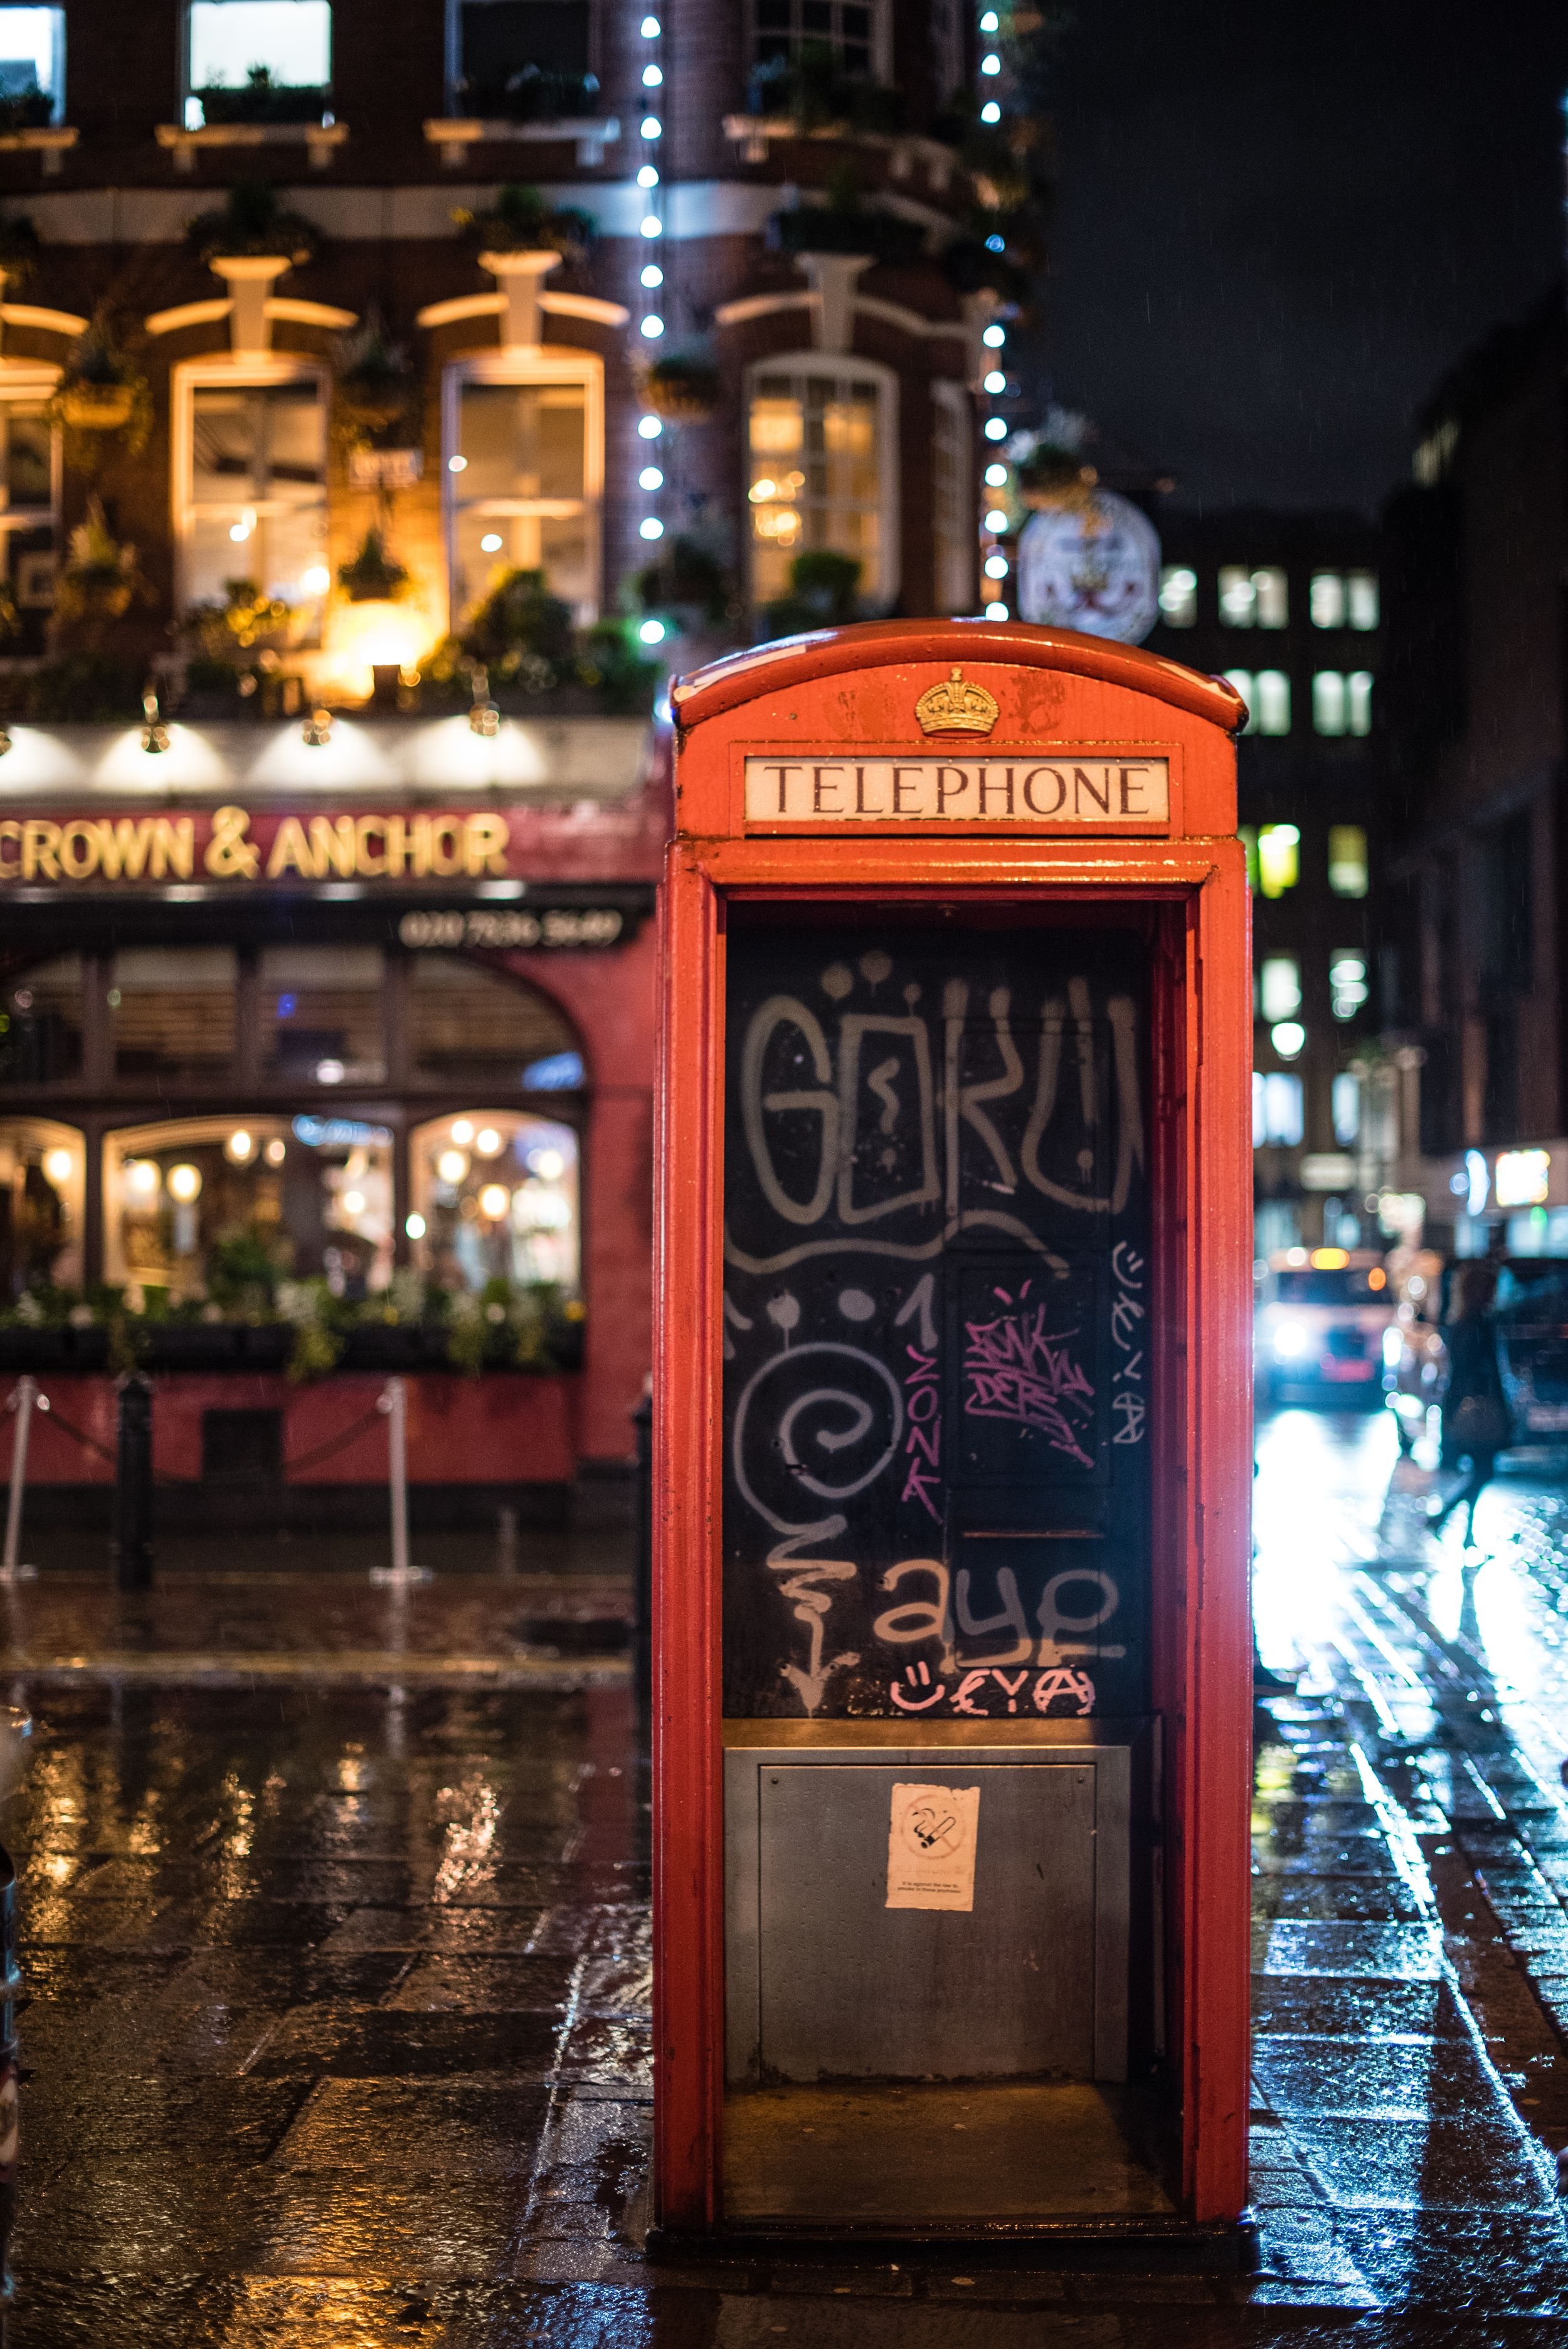 London's famous red telephone booth on a rainy night at Crown & Anchor